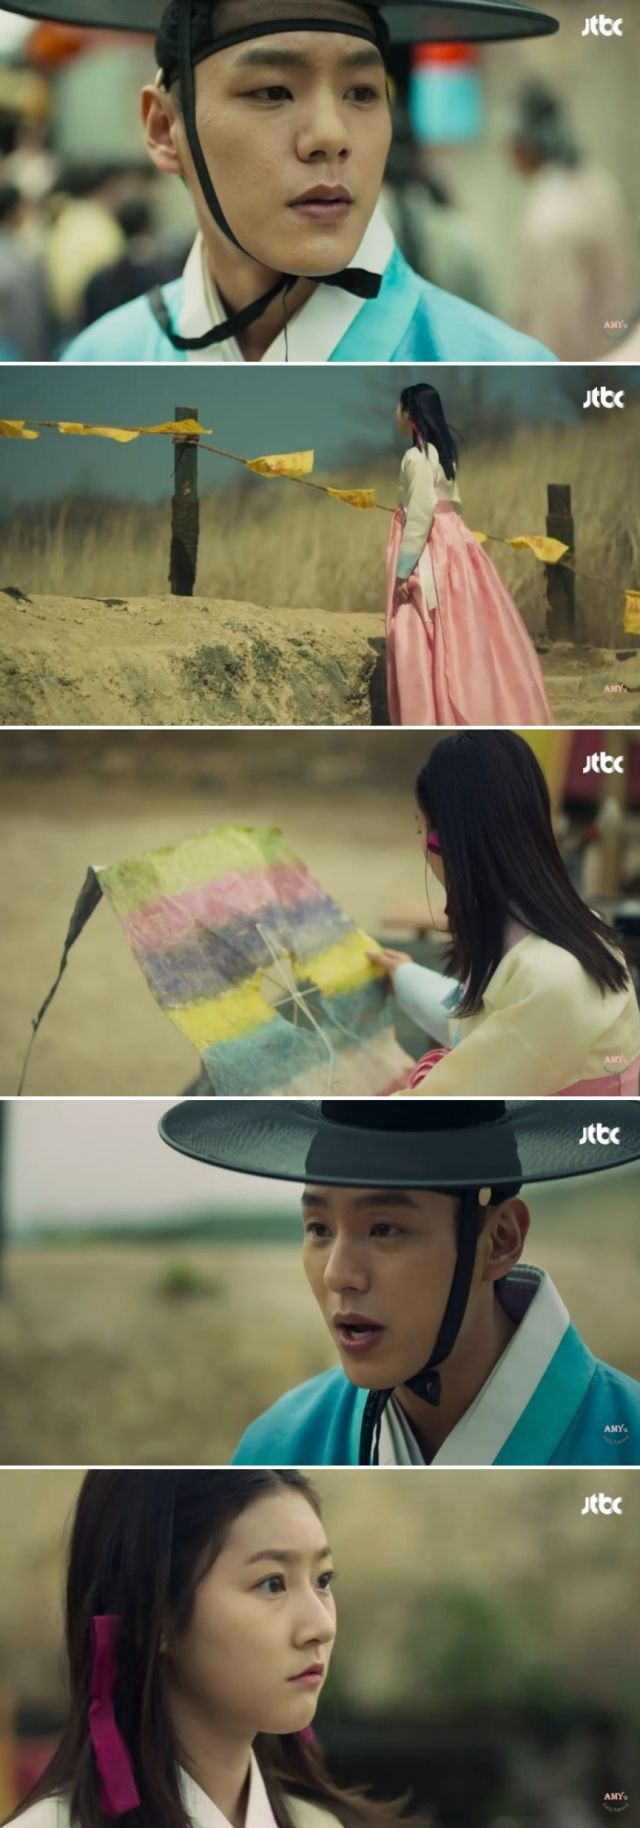 [Spoiler] Added episodes 3 and 4 captures for the Korean